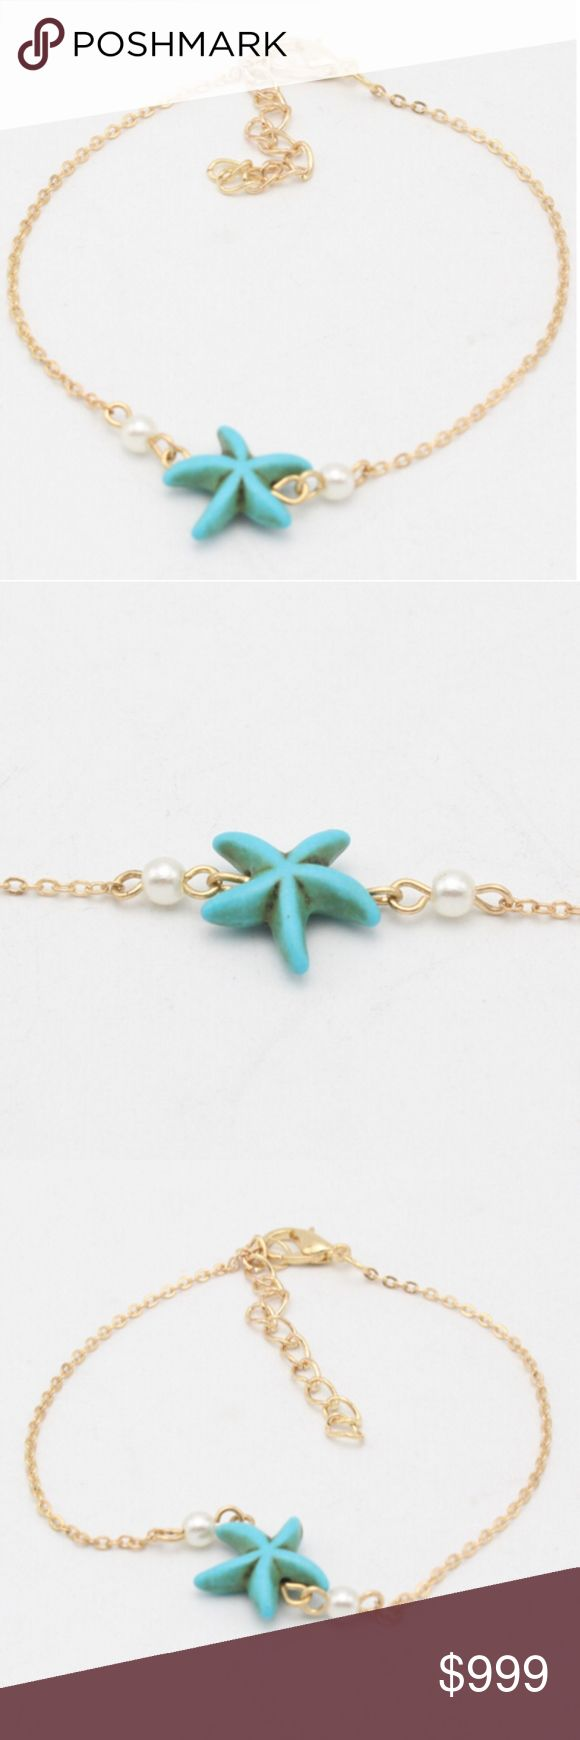 """COMING SOON!! """"Like"""" To Be Notified!! COMING SOON!! """"Like"""" To Be Notified!!   Brand new in original packaging. Rustic turquoise blue-green starfish stone pendant next to two white pearls on a gold link chain (20-30cm) + extender for adjustable length to wear as both a bracelet & anklet for boho beach vibes!  Made of gold metal alloy, stone & faux pearl.  Nickel & lead free. All sales are final, please ask all questions prior to purchasing! Jewelry Bracelets"""